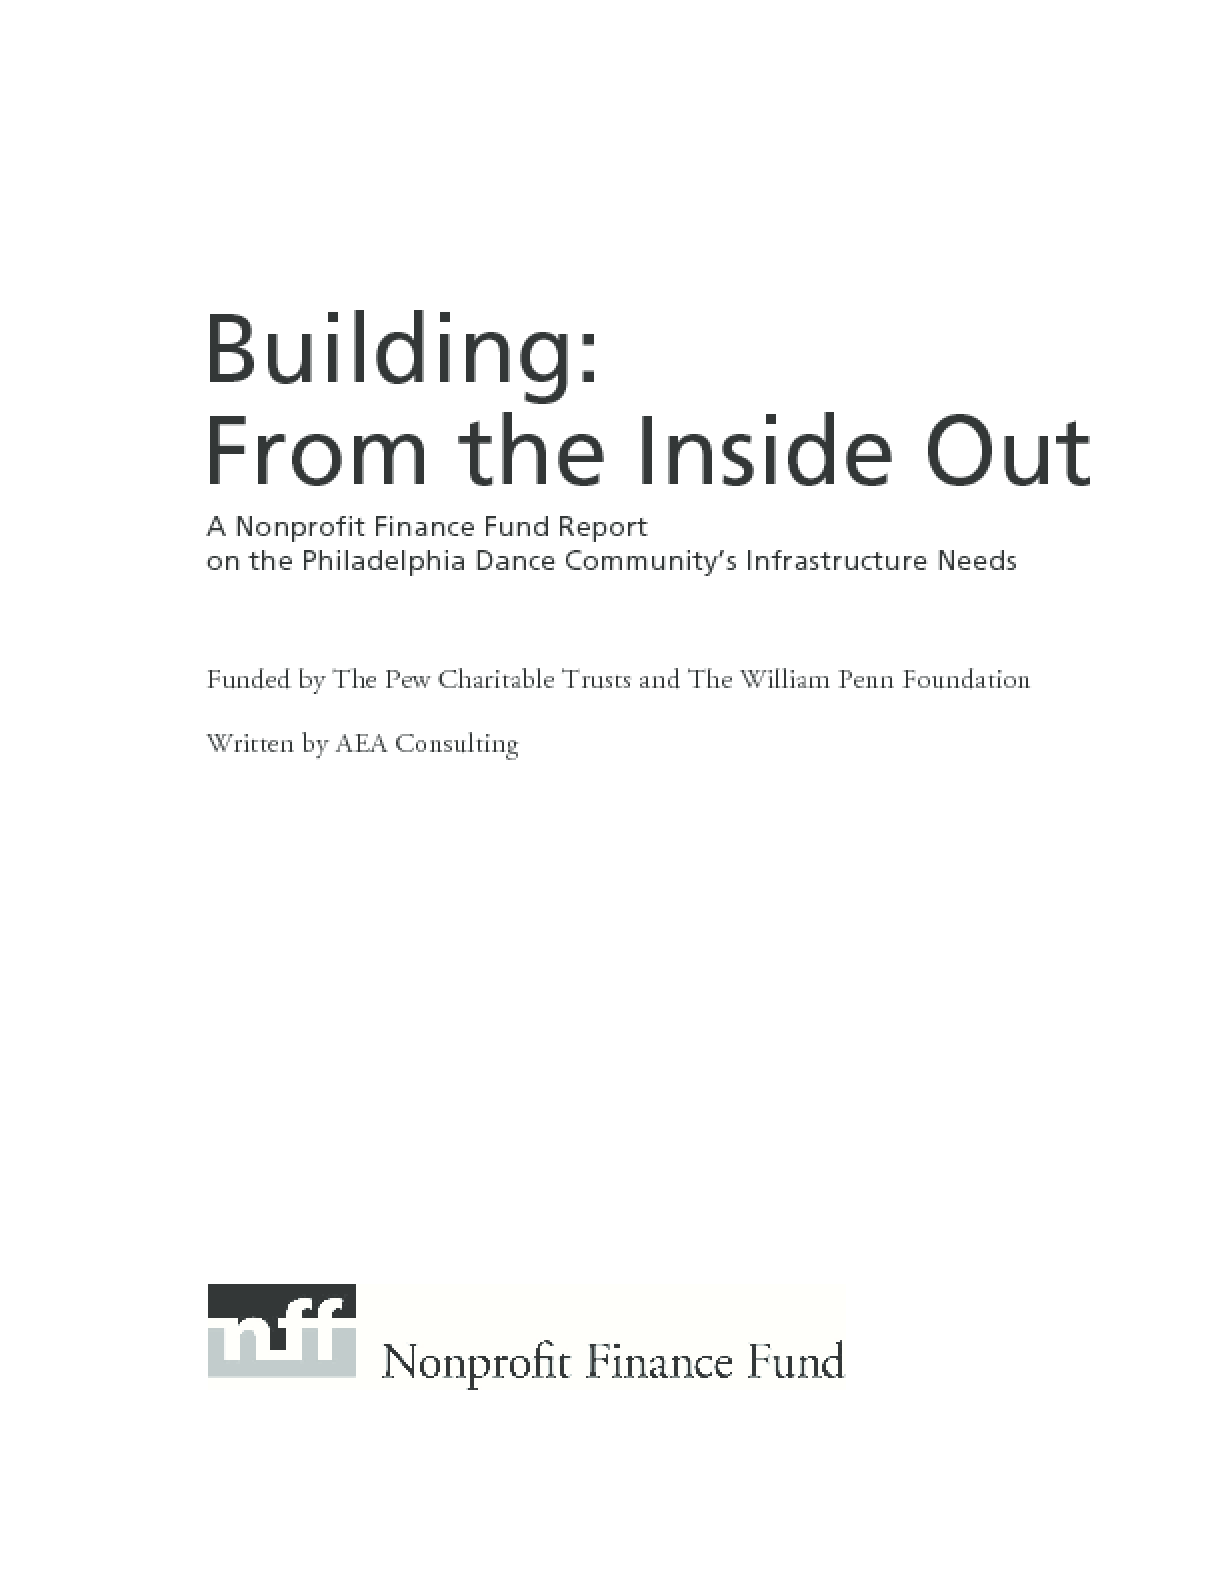 Building: From the Inside Out -- A Nonprofit Finance Fund Report on the Philadelphia Dance Community's Infrastructure Needs